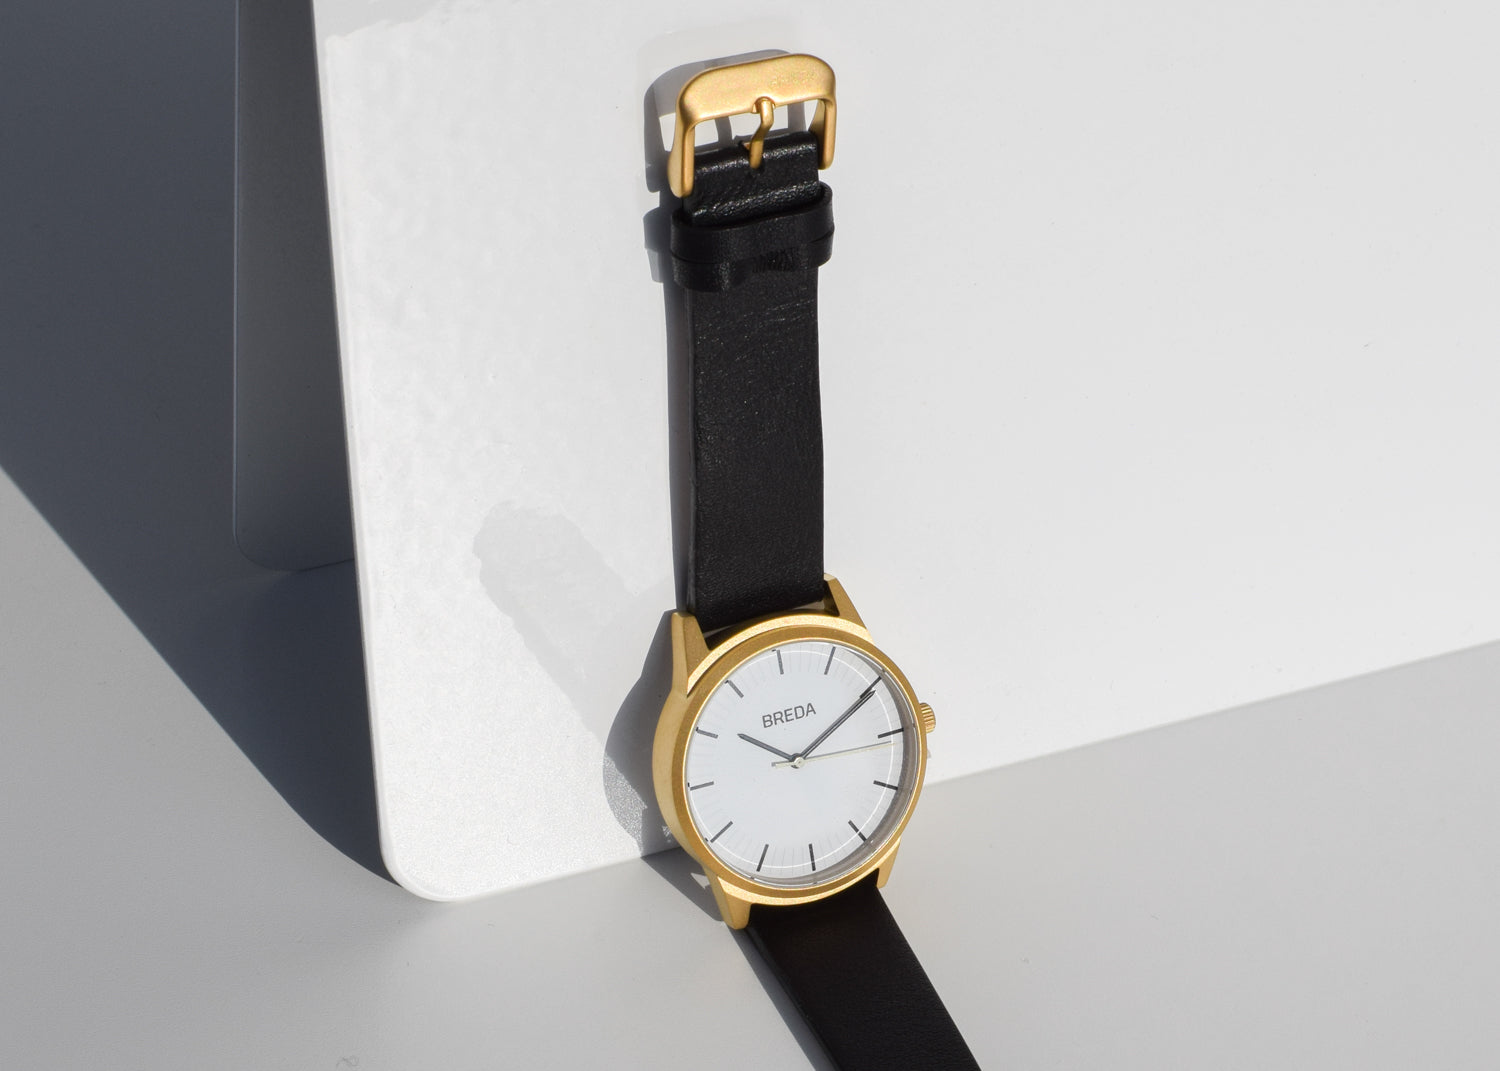 The mens Bresson Watch by Breda from Commonplace.